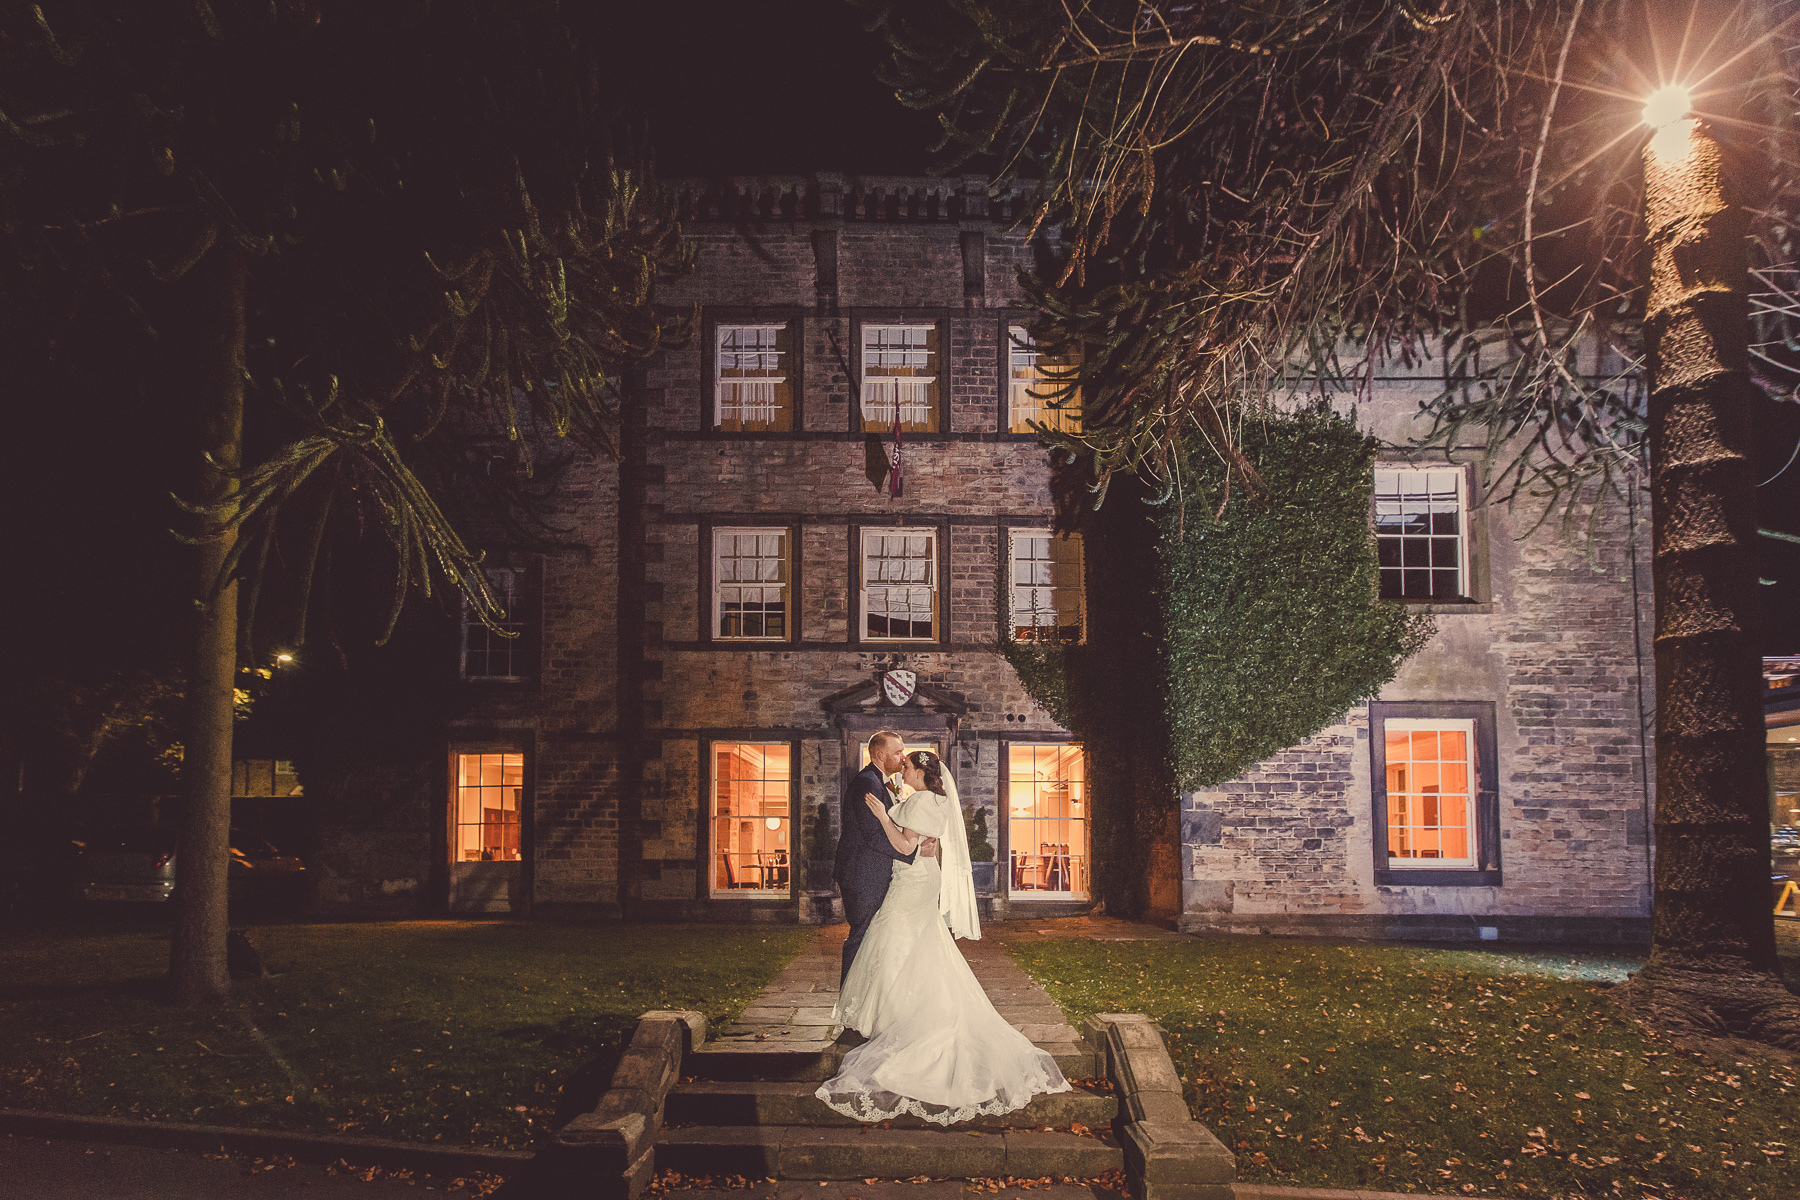 Meet Our Venue Of The Month - Mosborough Hall